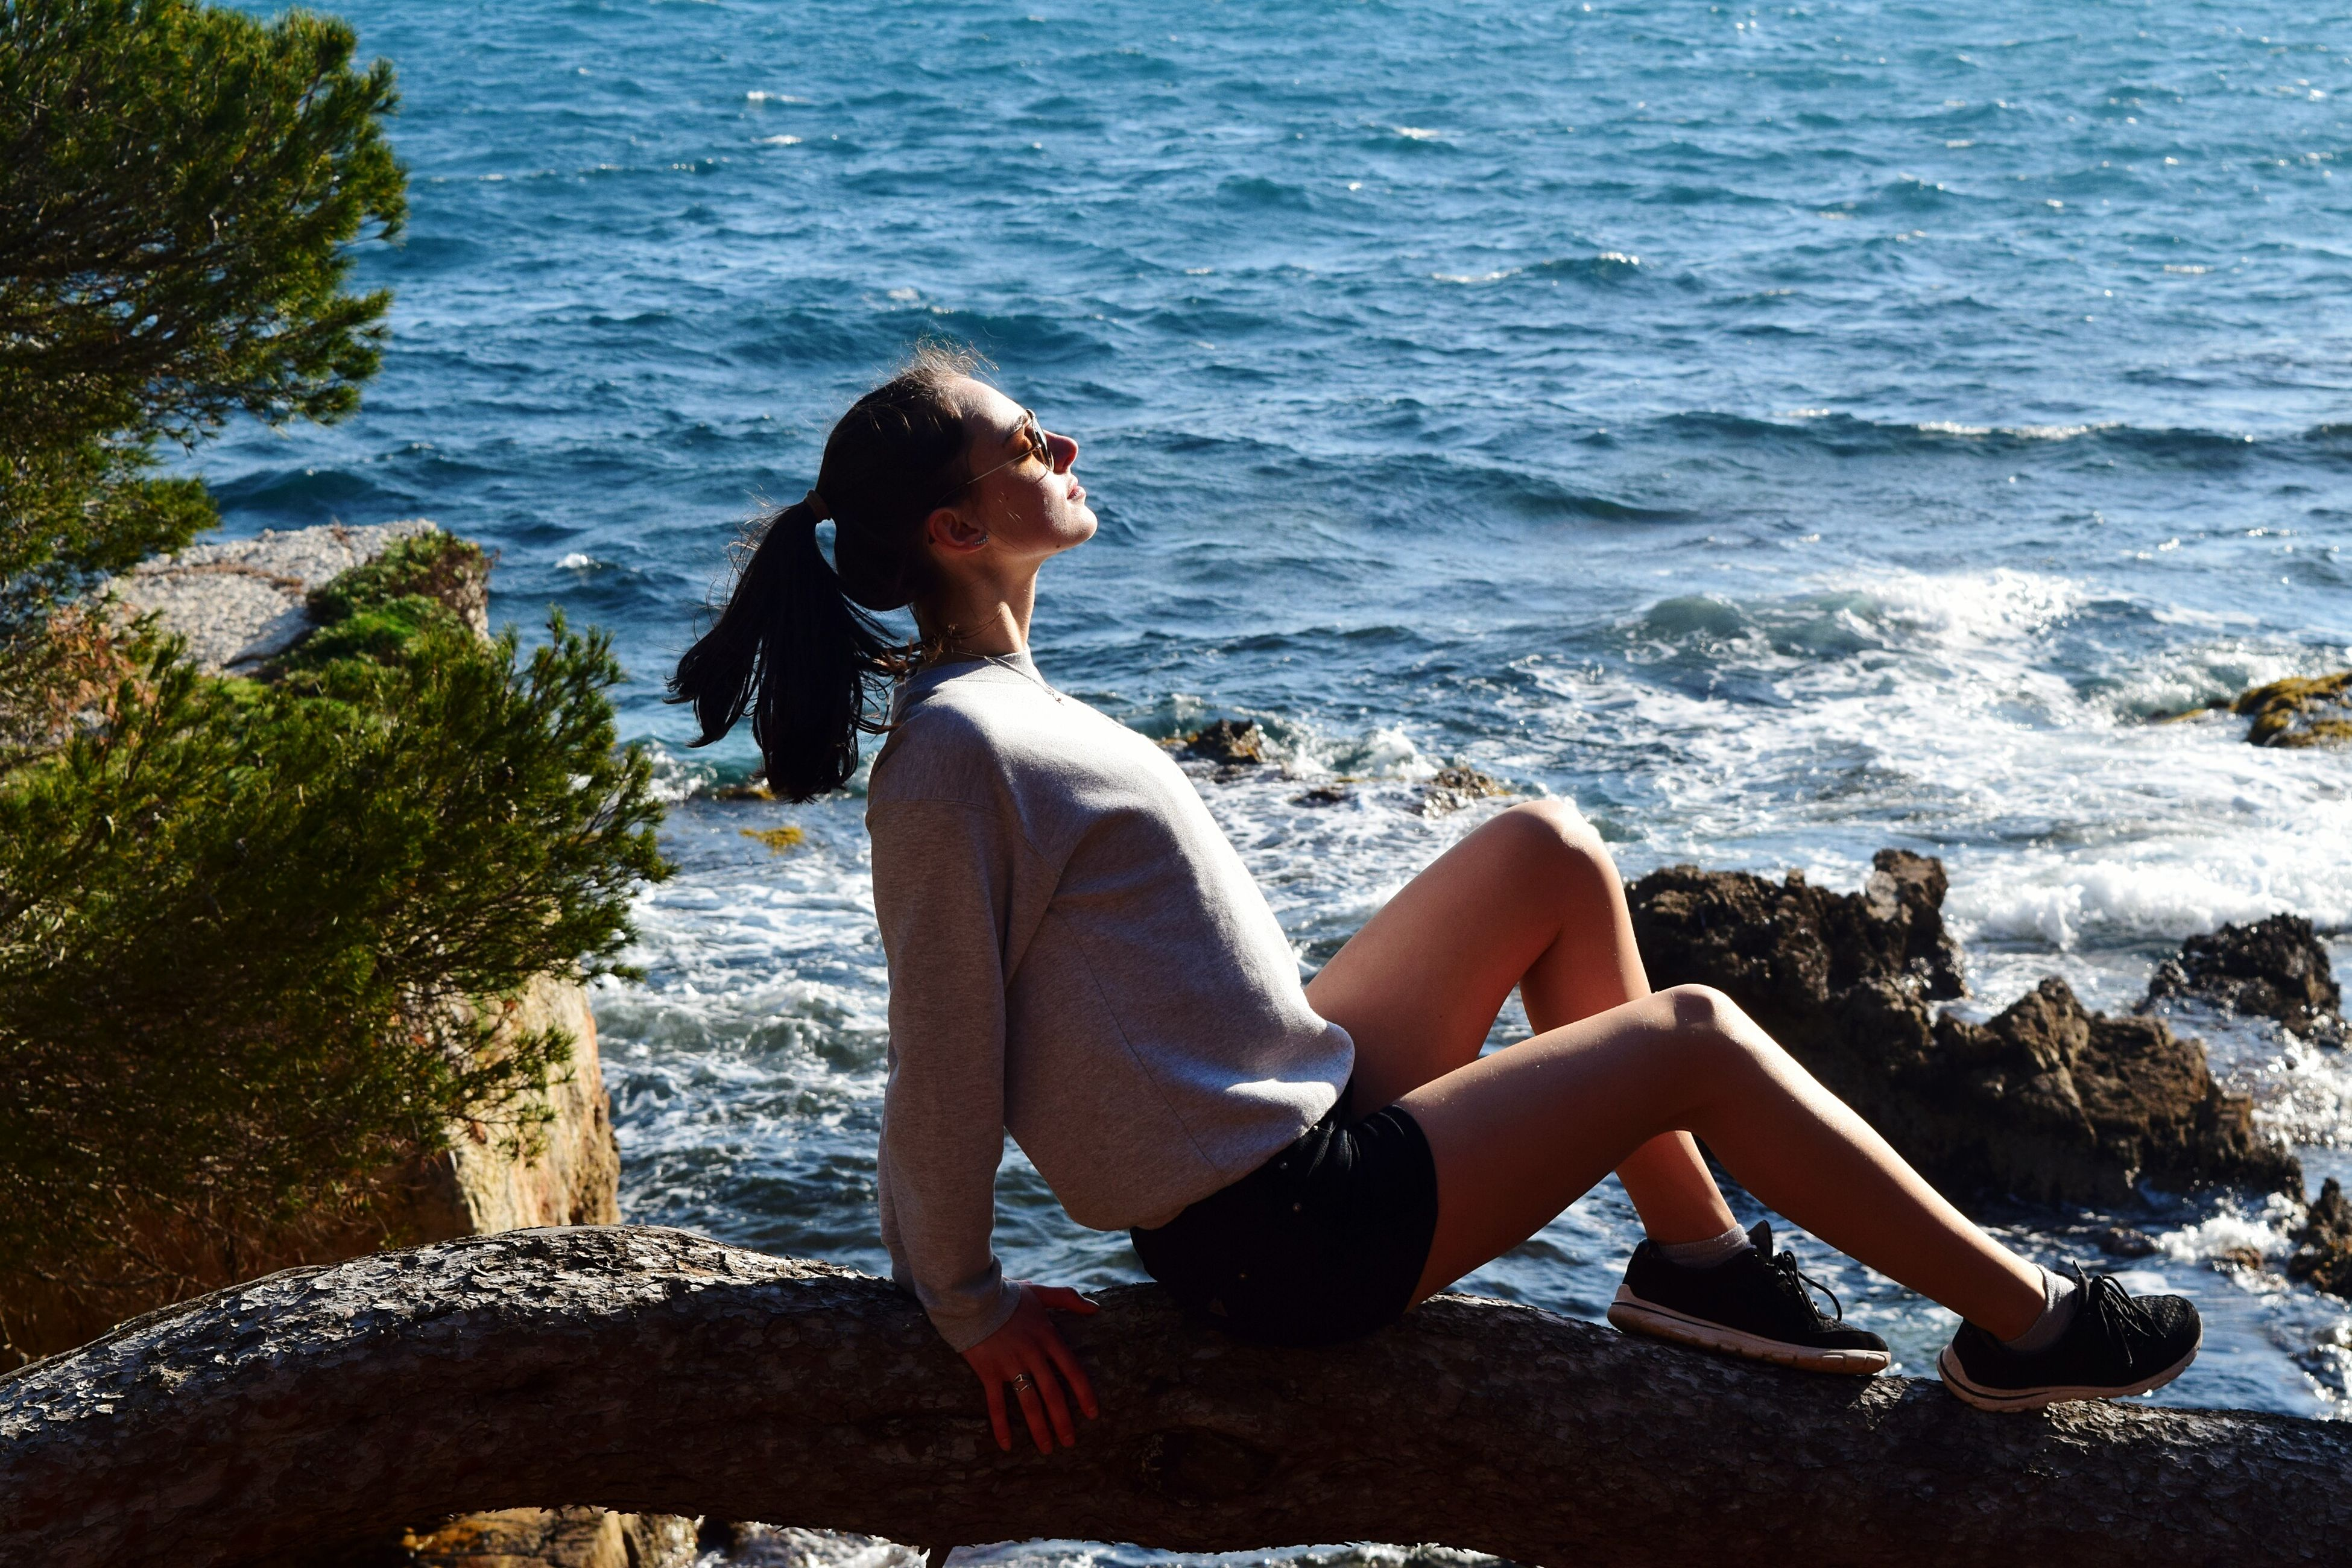 sunlight, sitting, sea, water, summer, leisure activity, relaxation, lifestyles, day, full length, one person, beach, one woman only, outdoors, vacations, only women, nature, young adult, one young woman only, adults only, young women, beauty in nature, people, adult